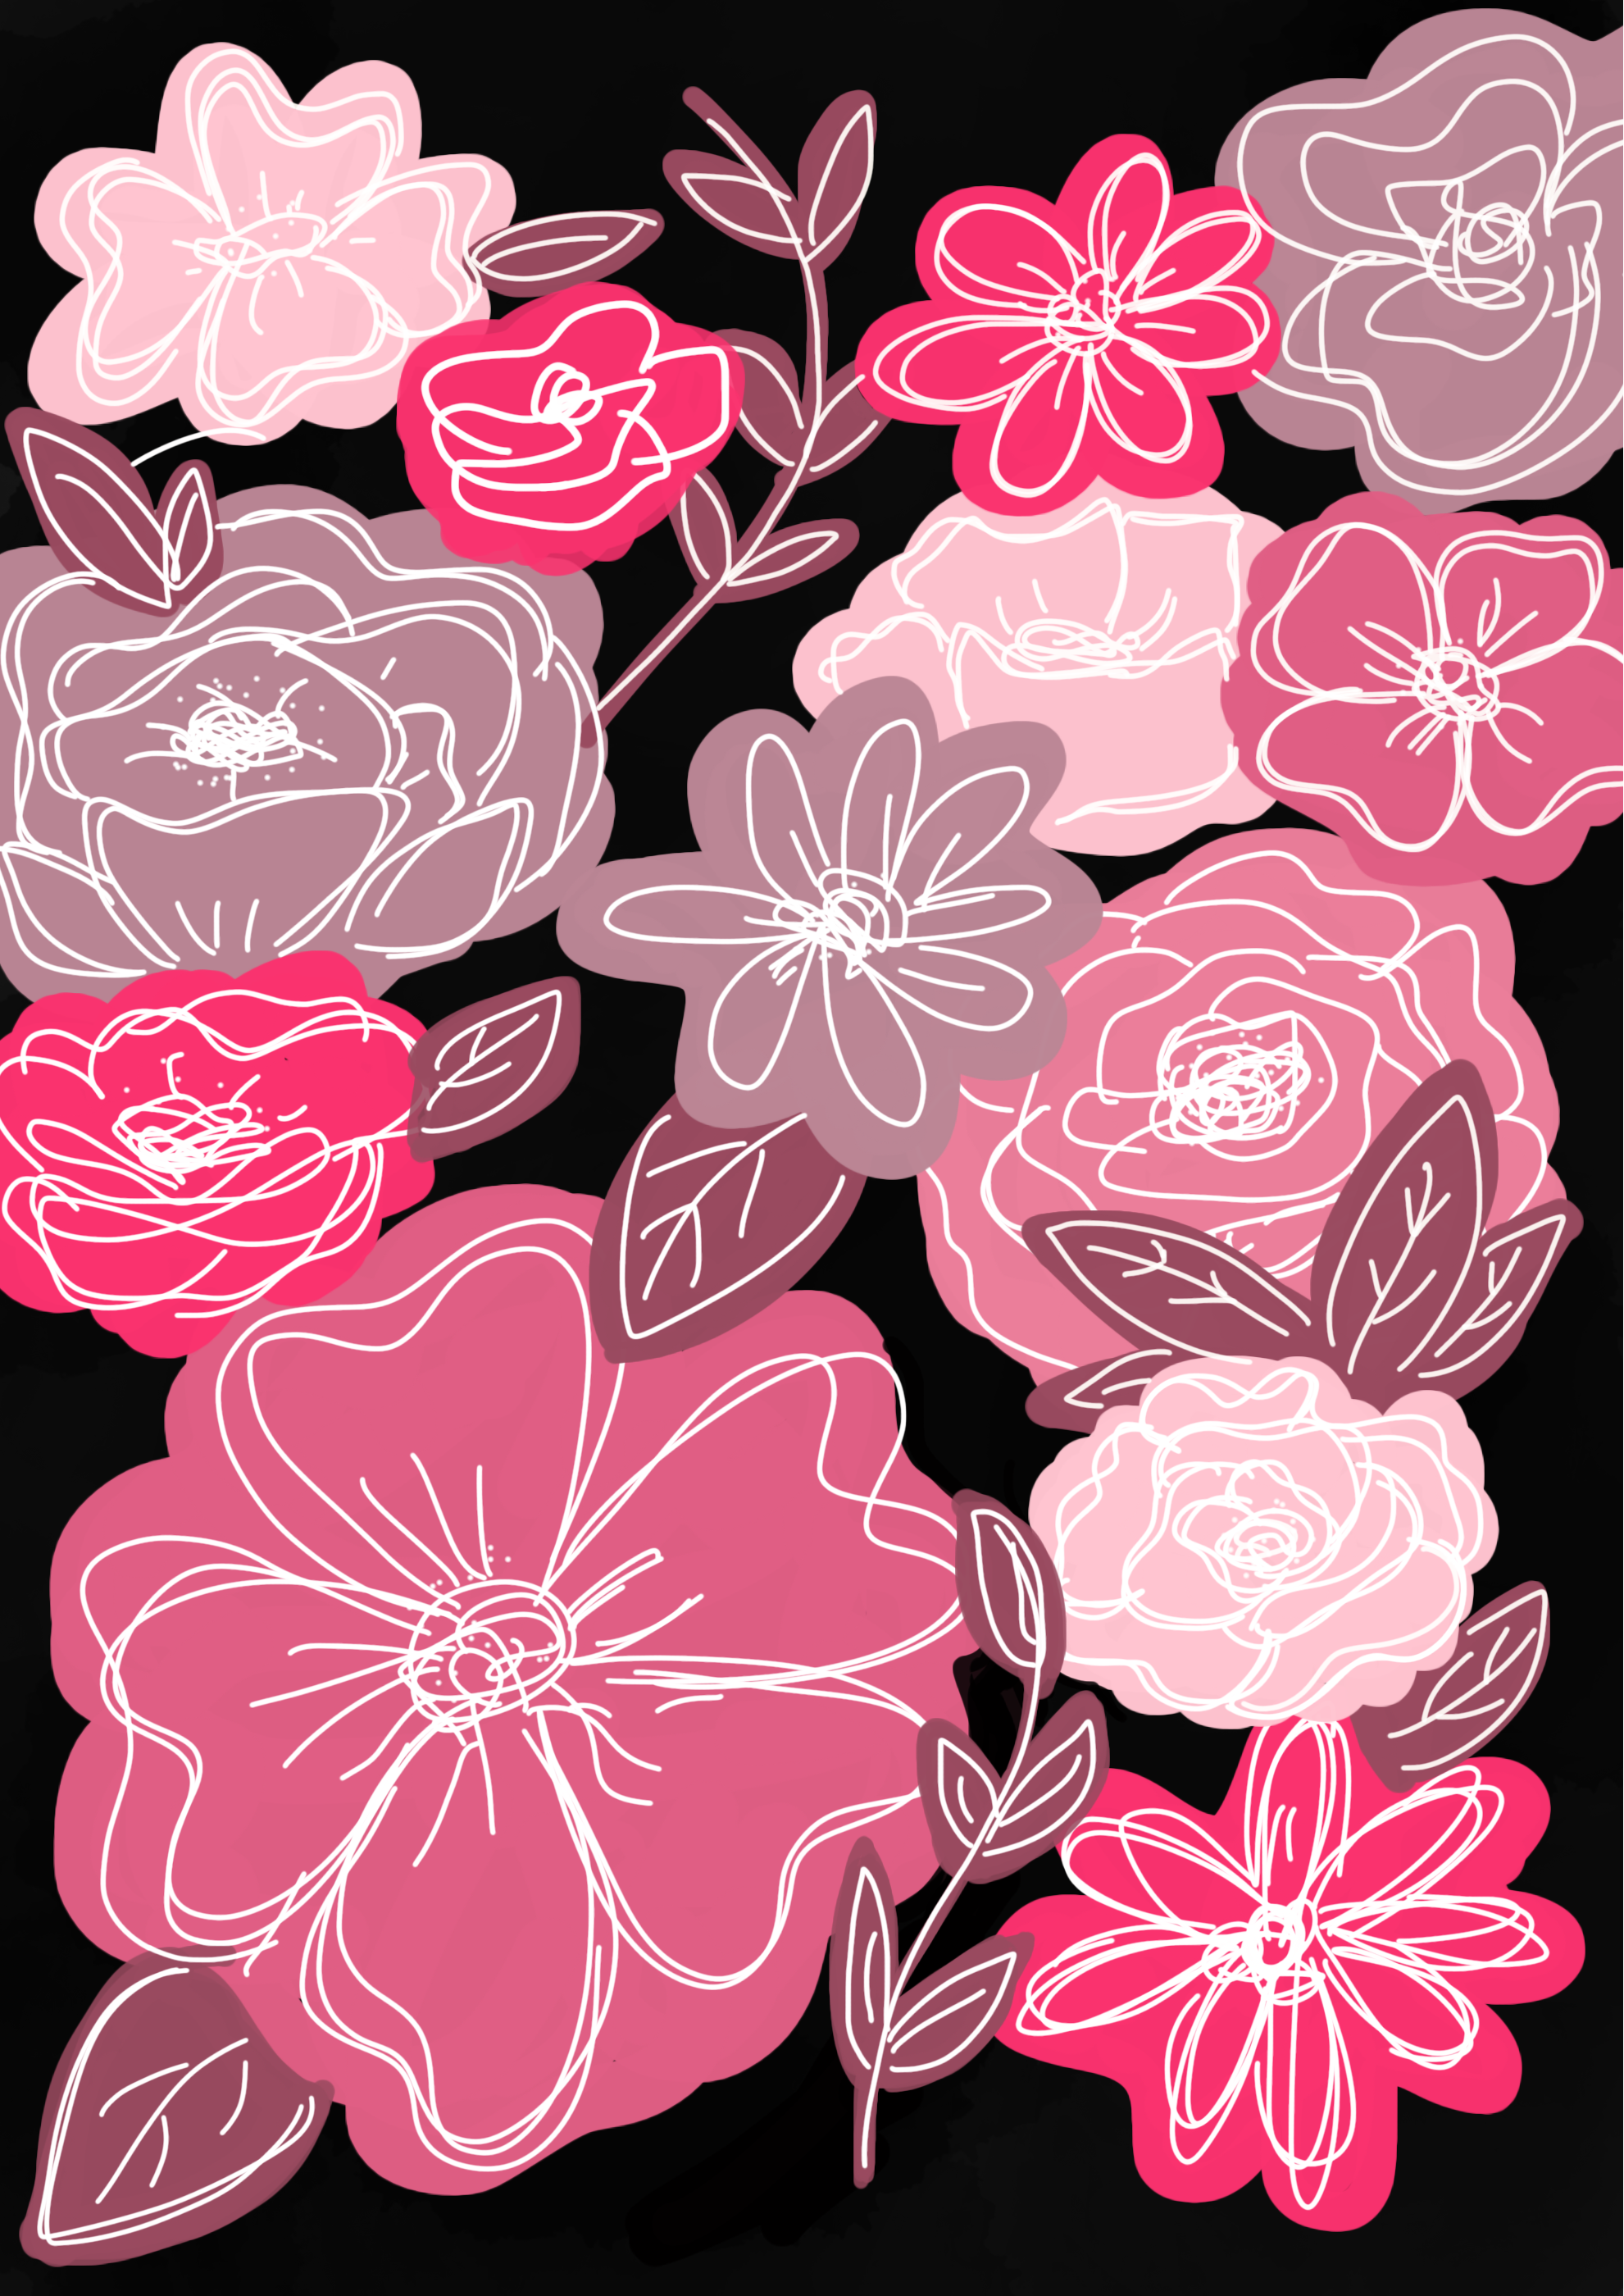 #fashion #diy #iphone #iphonewallpaper #flowers #floral #pink #aesthetic #vintage #drawing #sketch #ipad #handmade #pastel